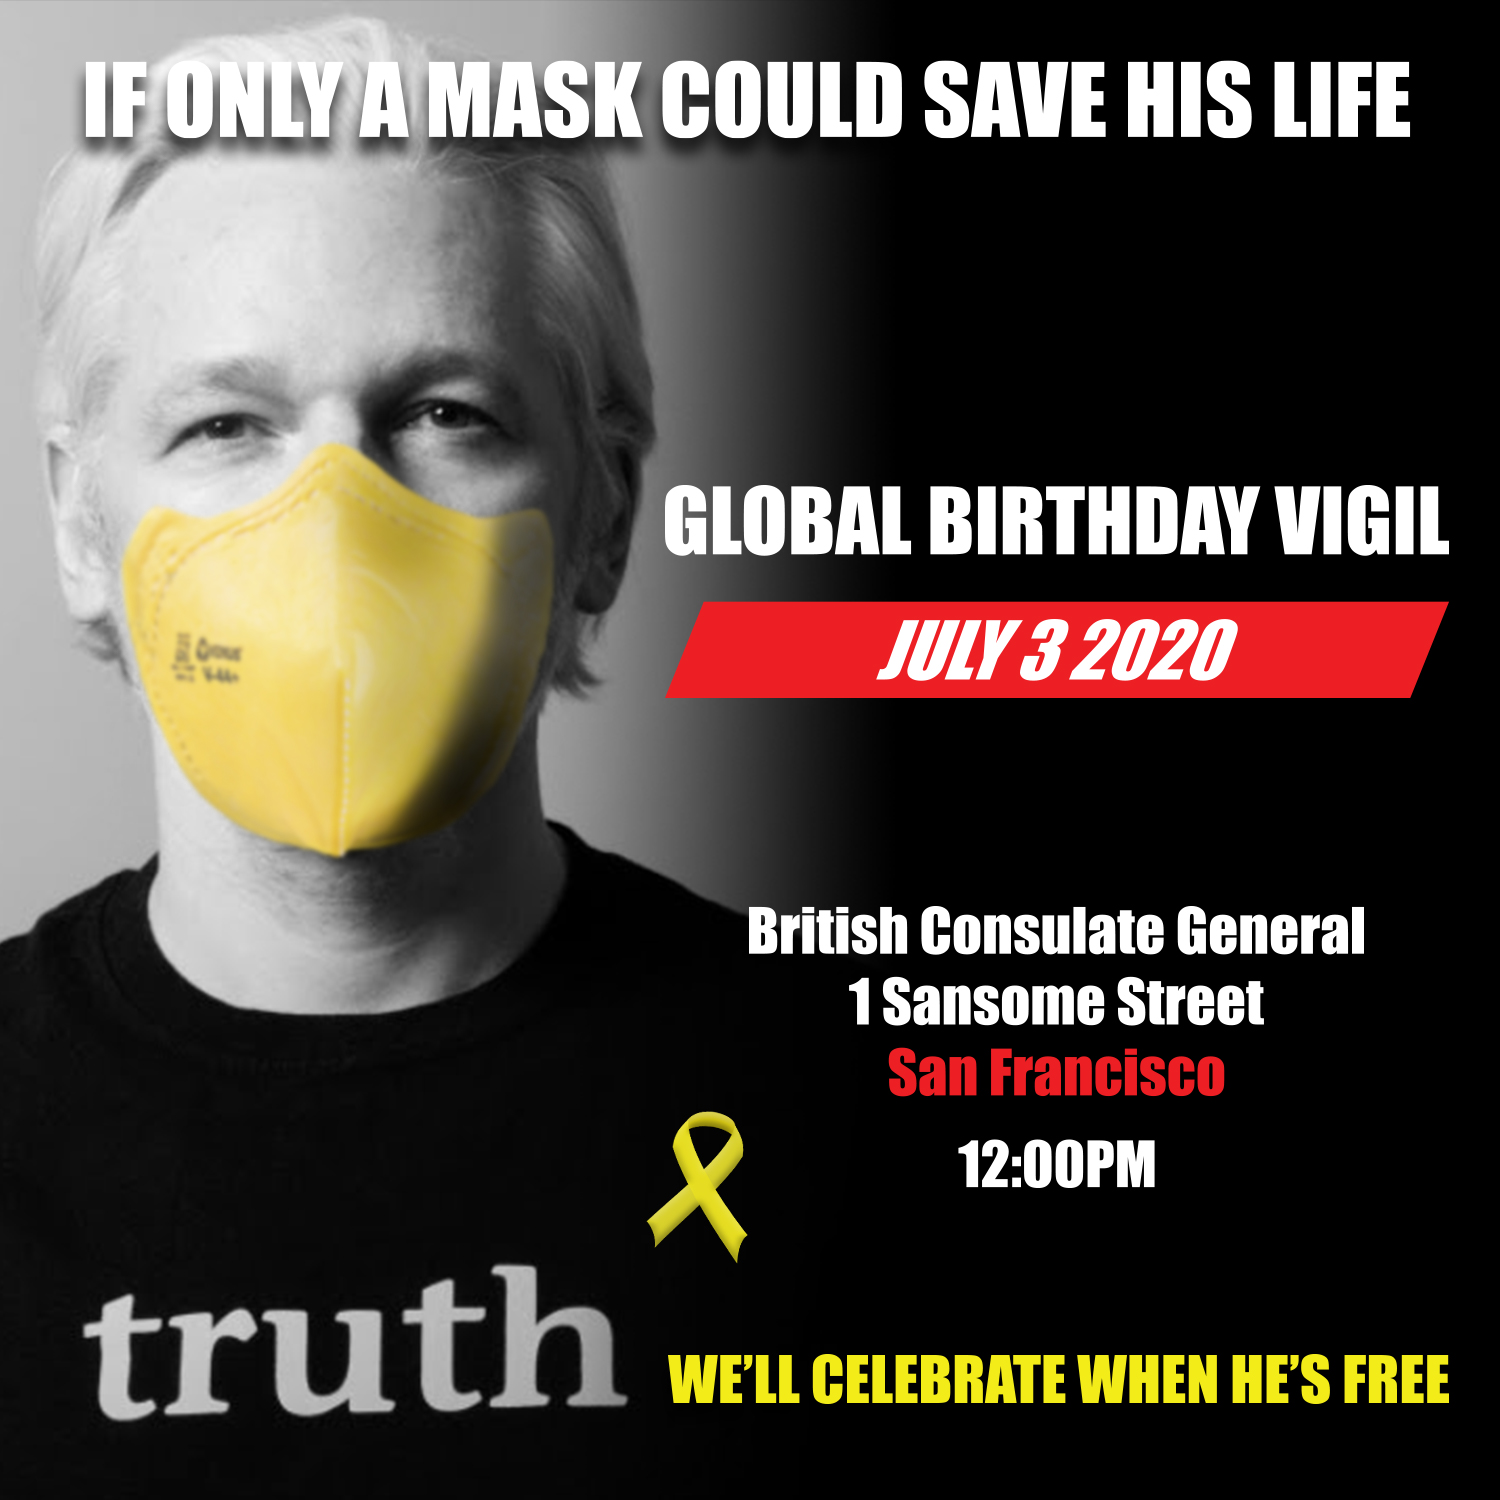 Julian Assange - Global Birthday Vigil @ British Consulate